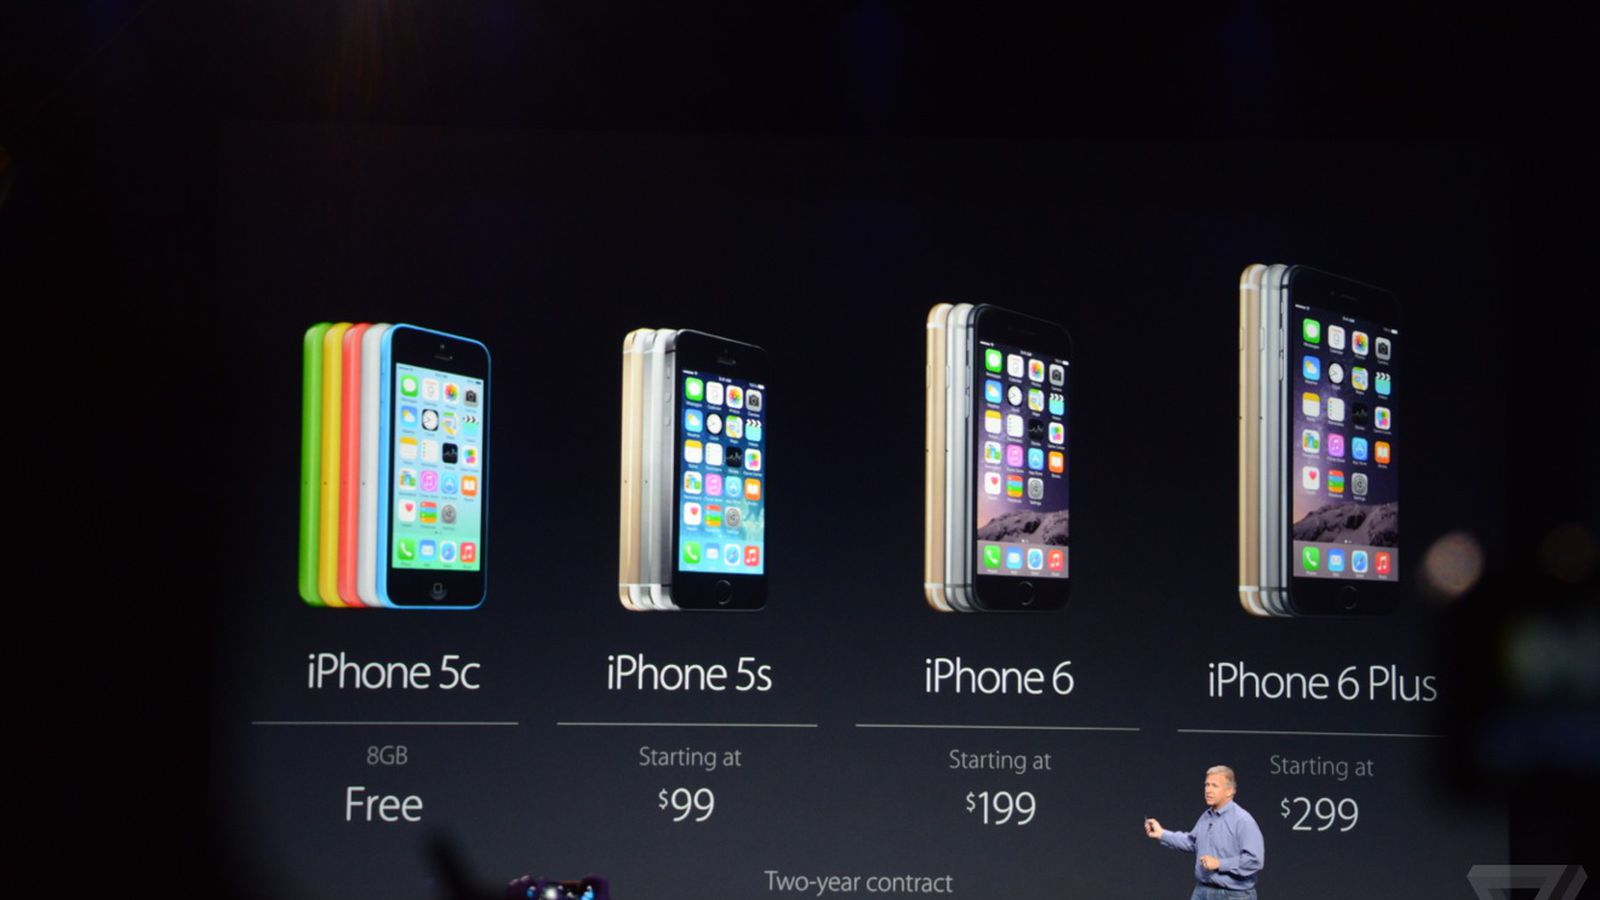 Apple Drops IPhone 5S Price To 99 Makes 5C Its Free Option